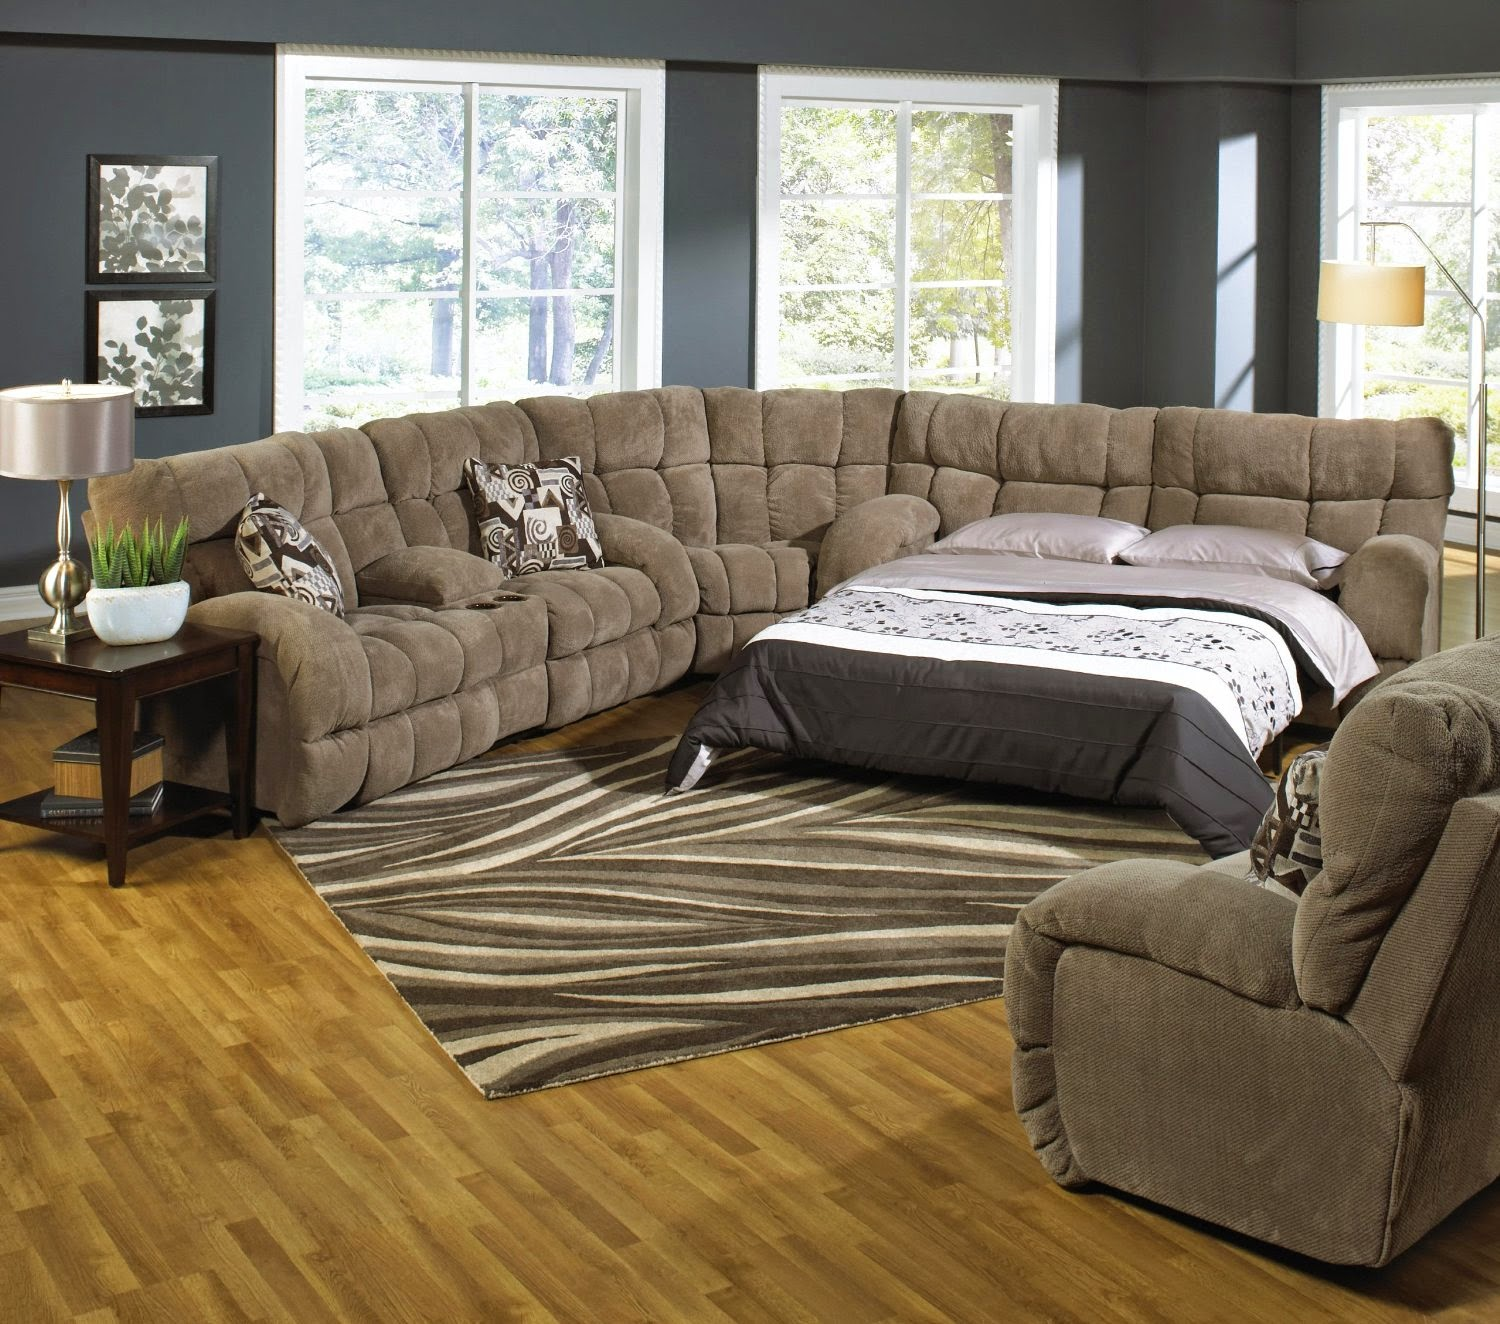 Reclining Sofa Sets Sale: Reclining Sleeper Sofa Set